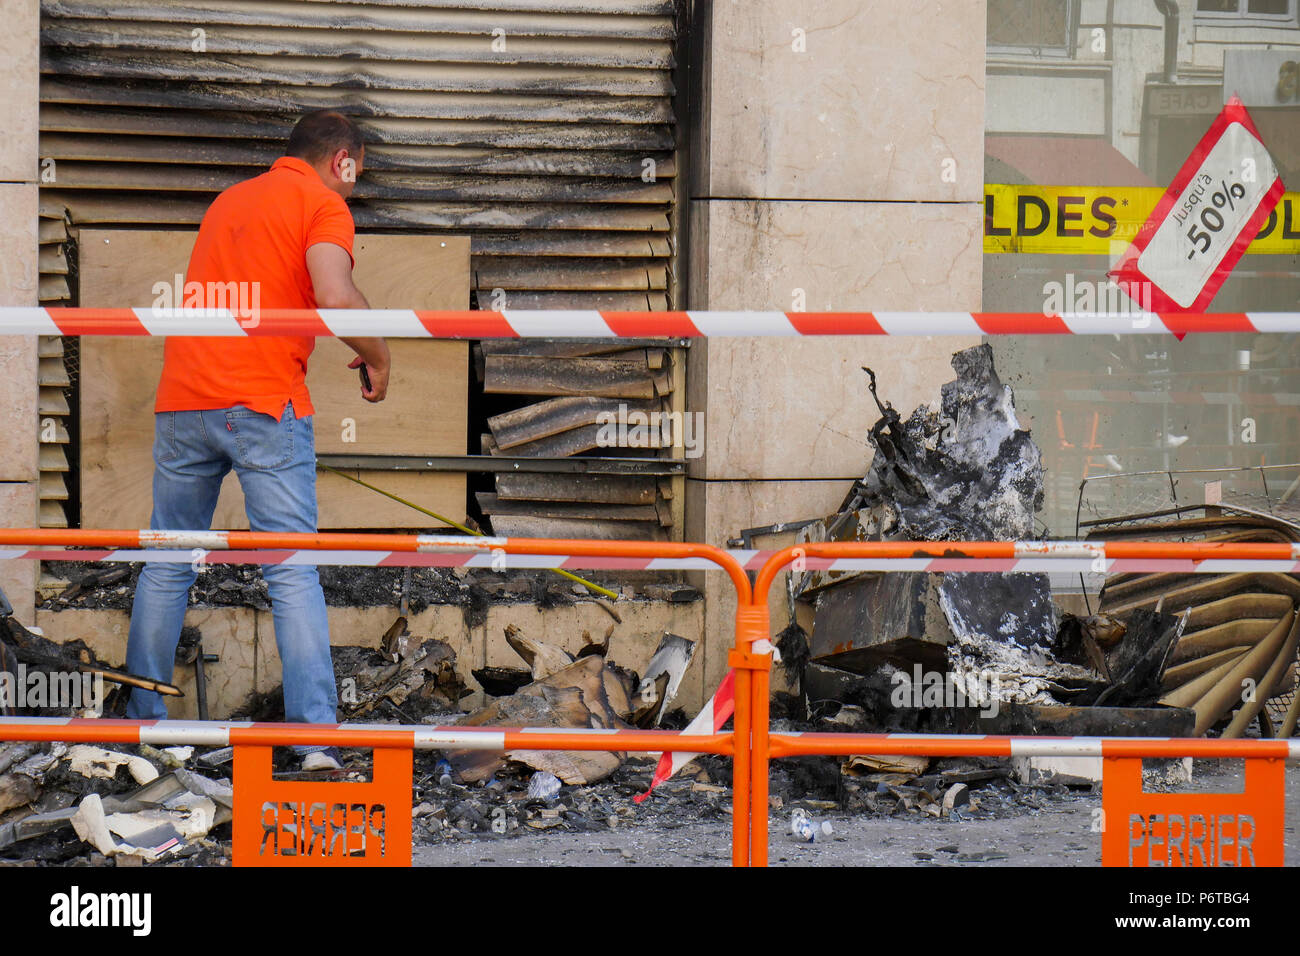 An insurance comapny expert looks at a building damaged by fire, Lyon, France Stock Photo